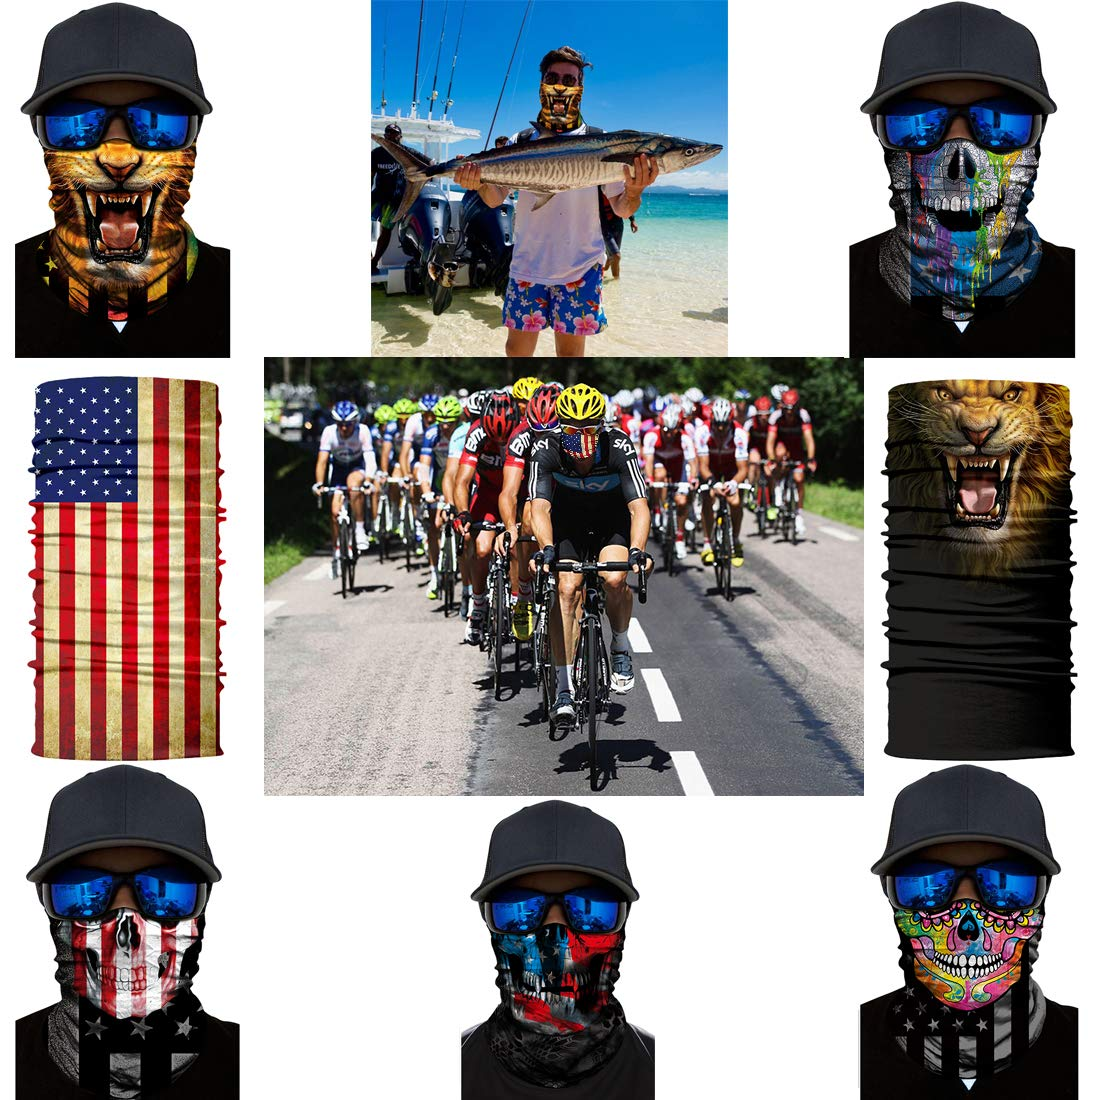 Face-244 Airzir Outdoor Face Mask Breathable Seamless Tube Dust-proof Windproof UV Protection Motorcycle Bicycle ATV Face Mask for Motorcycling Cycling Hiking Camping Climbing Fishing Hunting